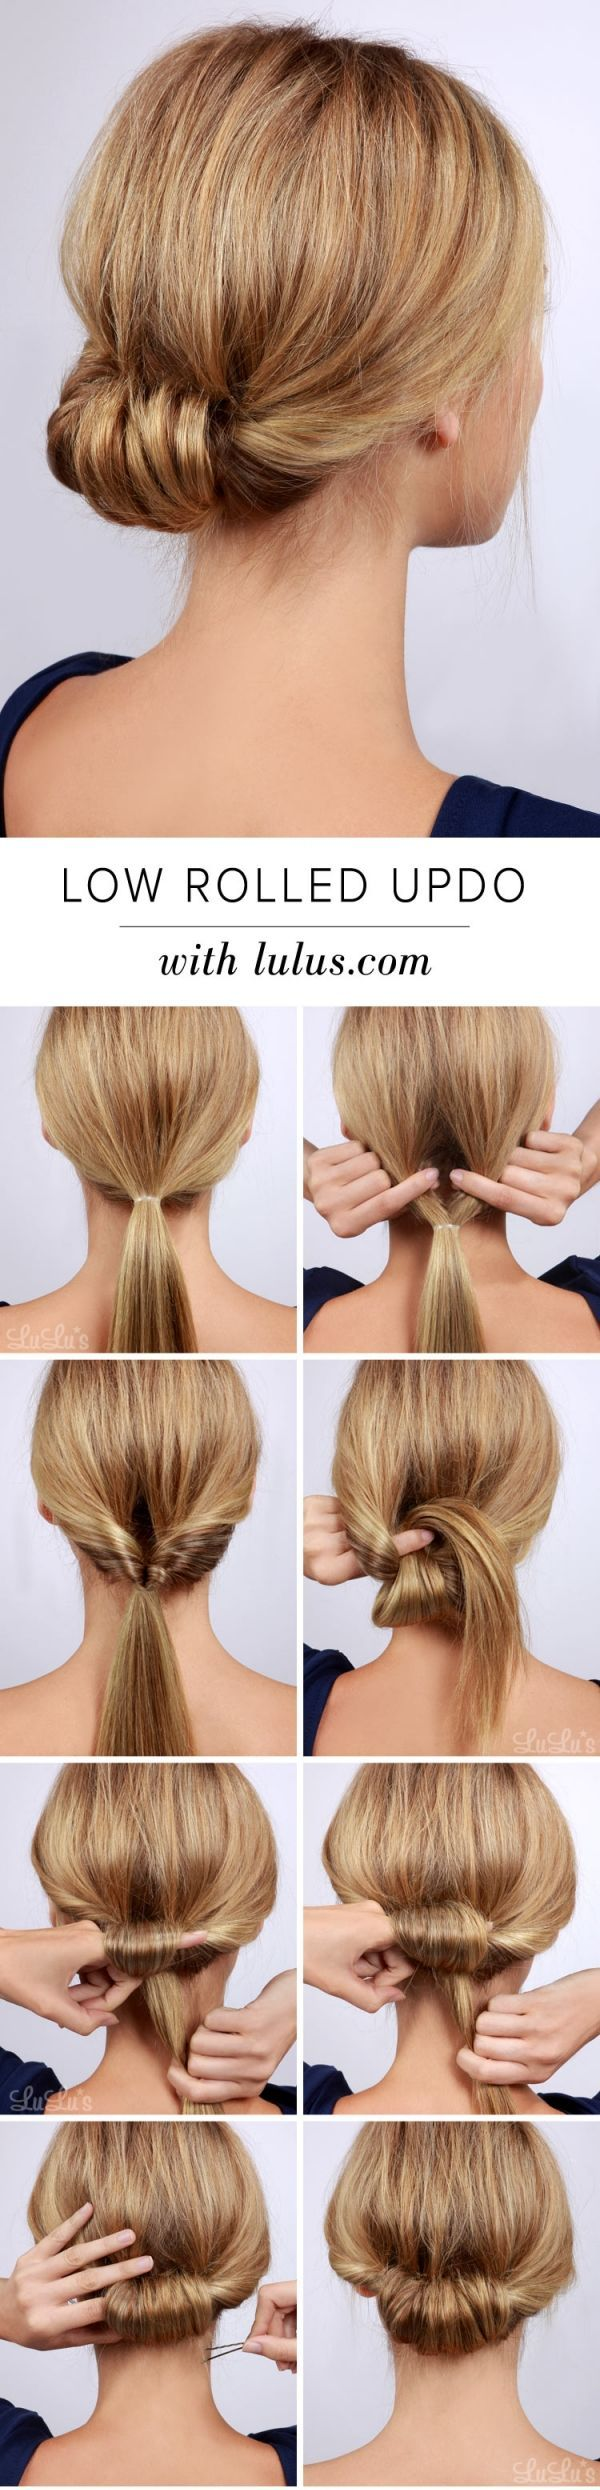 Easy Hairstyles For Thick Hair Interesting Tame Your Tresses With These Gorgeous Hairstyles For Thick Hair